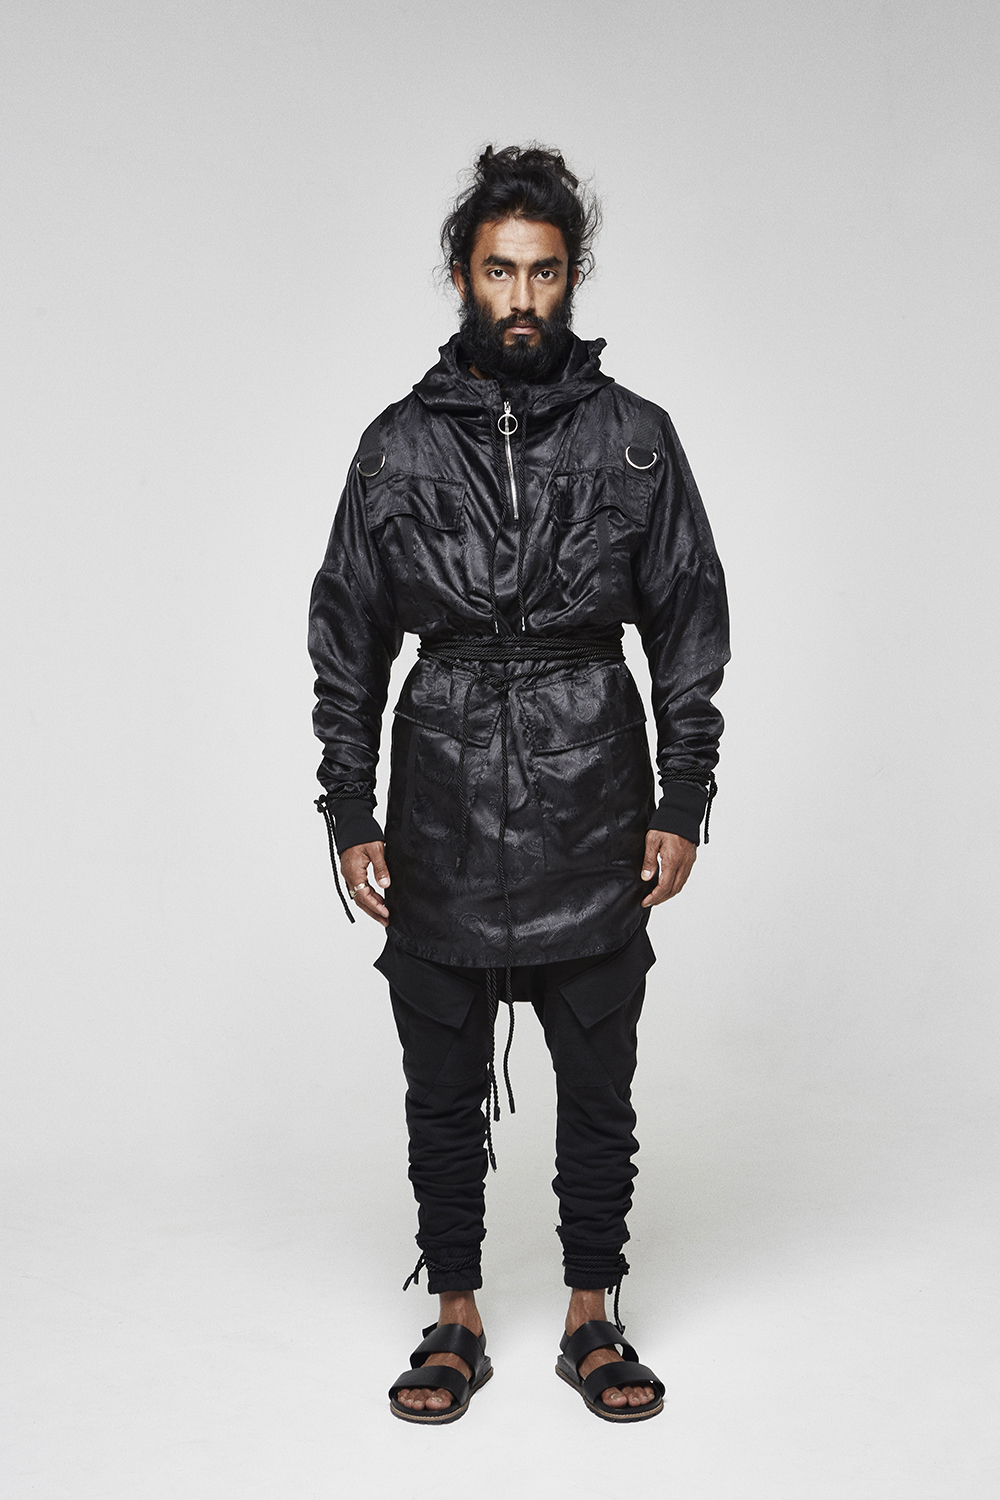 imtayaz-qassim-aw16-mens-lookbook-porhomme-11